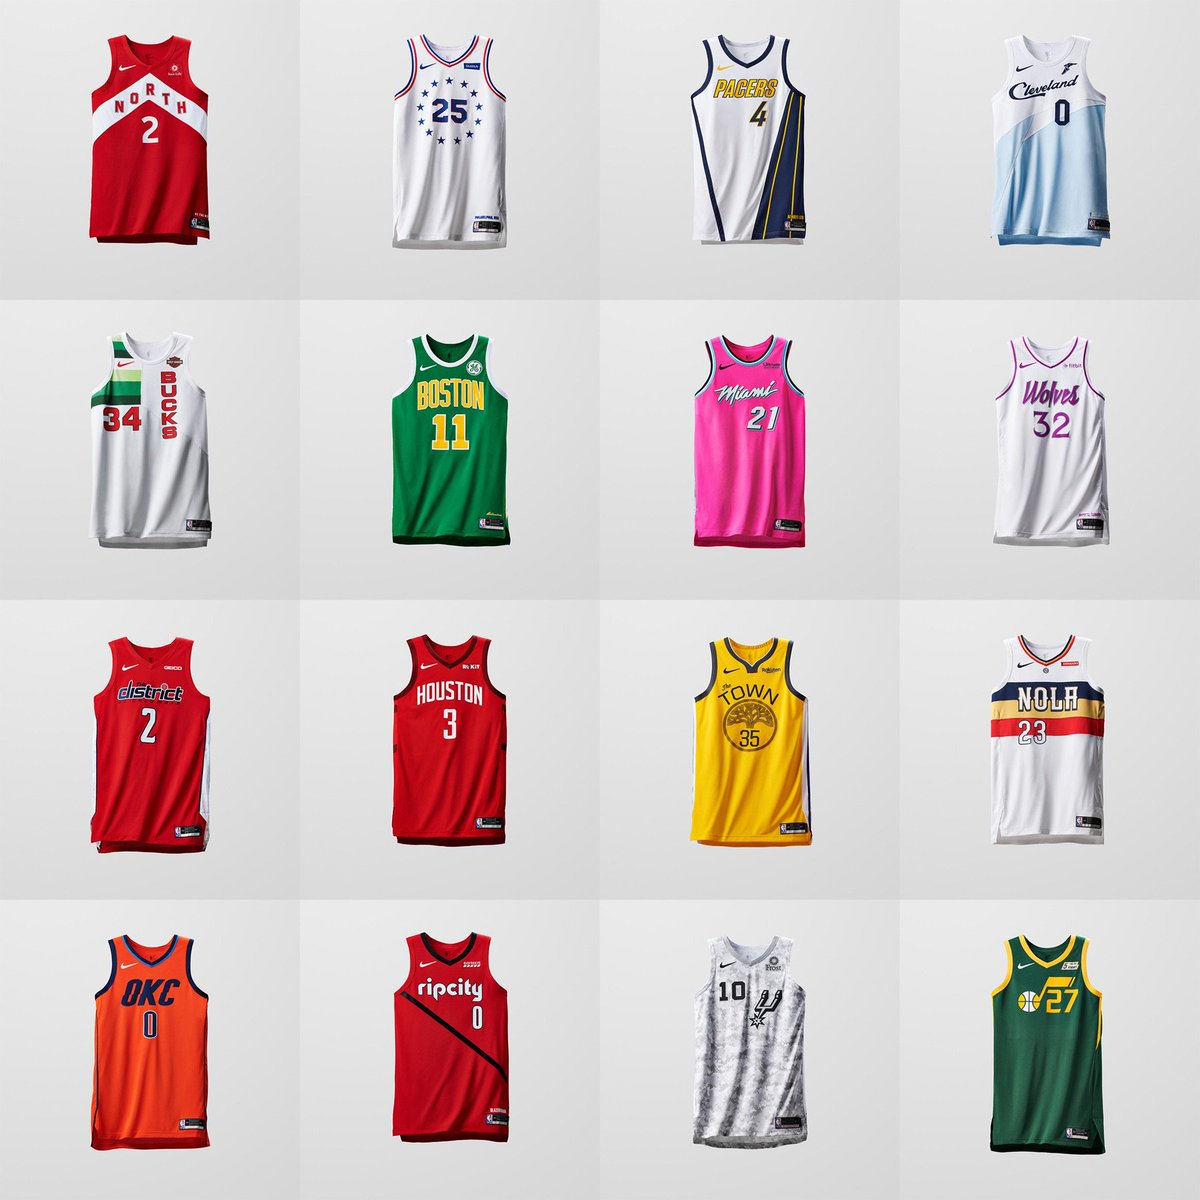 reputable site 26dd6 16e68 Now Available: Nike NBA Earned Edition City Jerseys ...